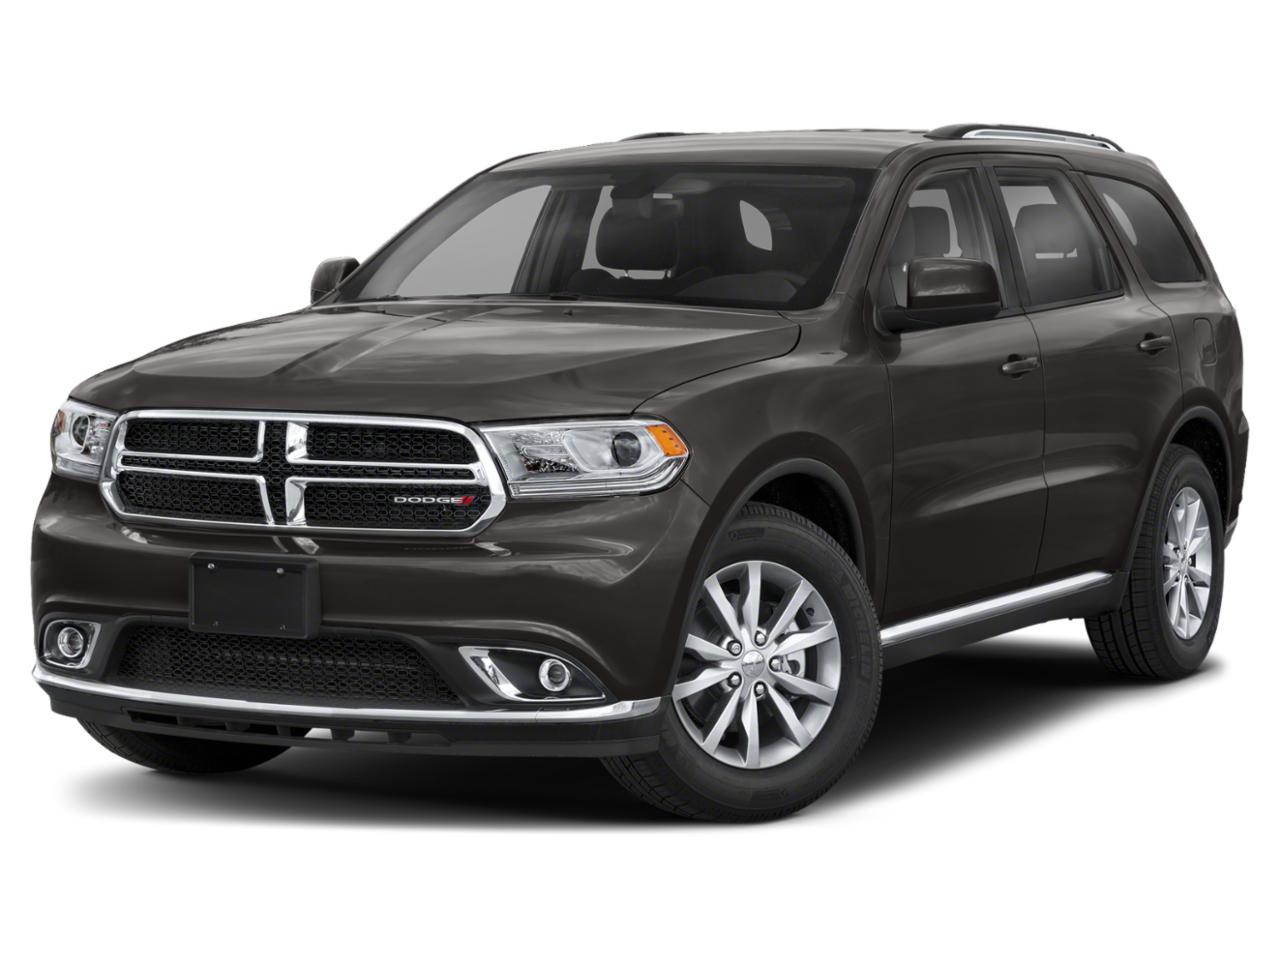 2019 Dodge Durango Vehicle Photo in Colma, CA 94014